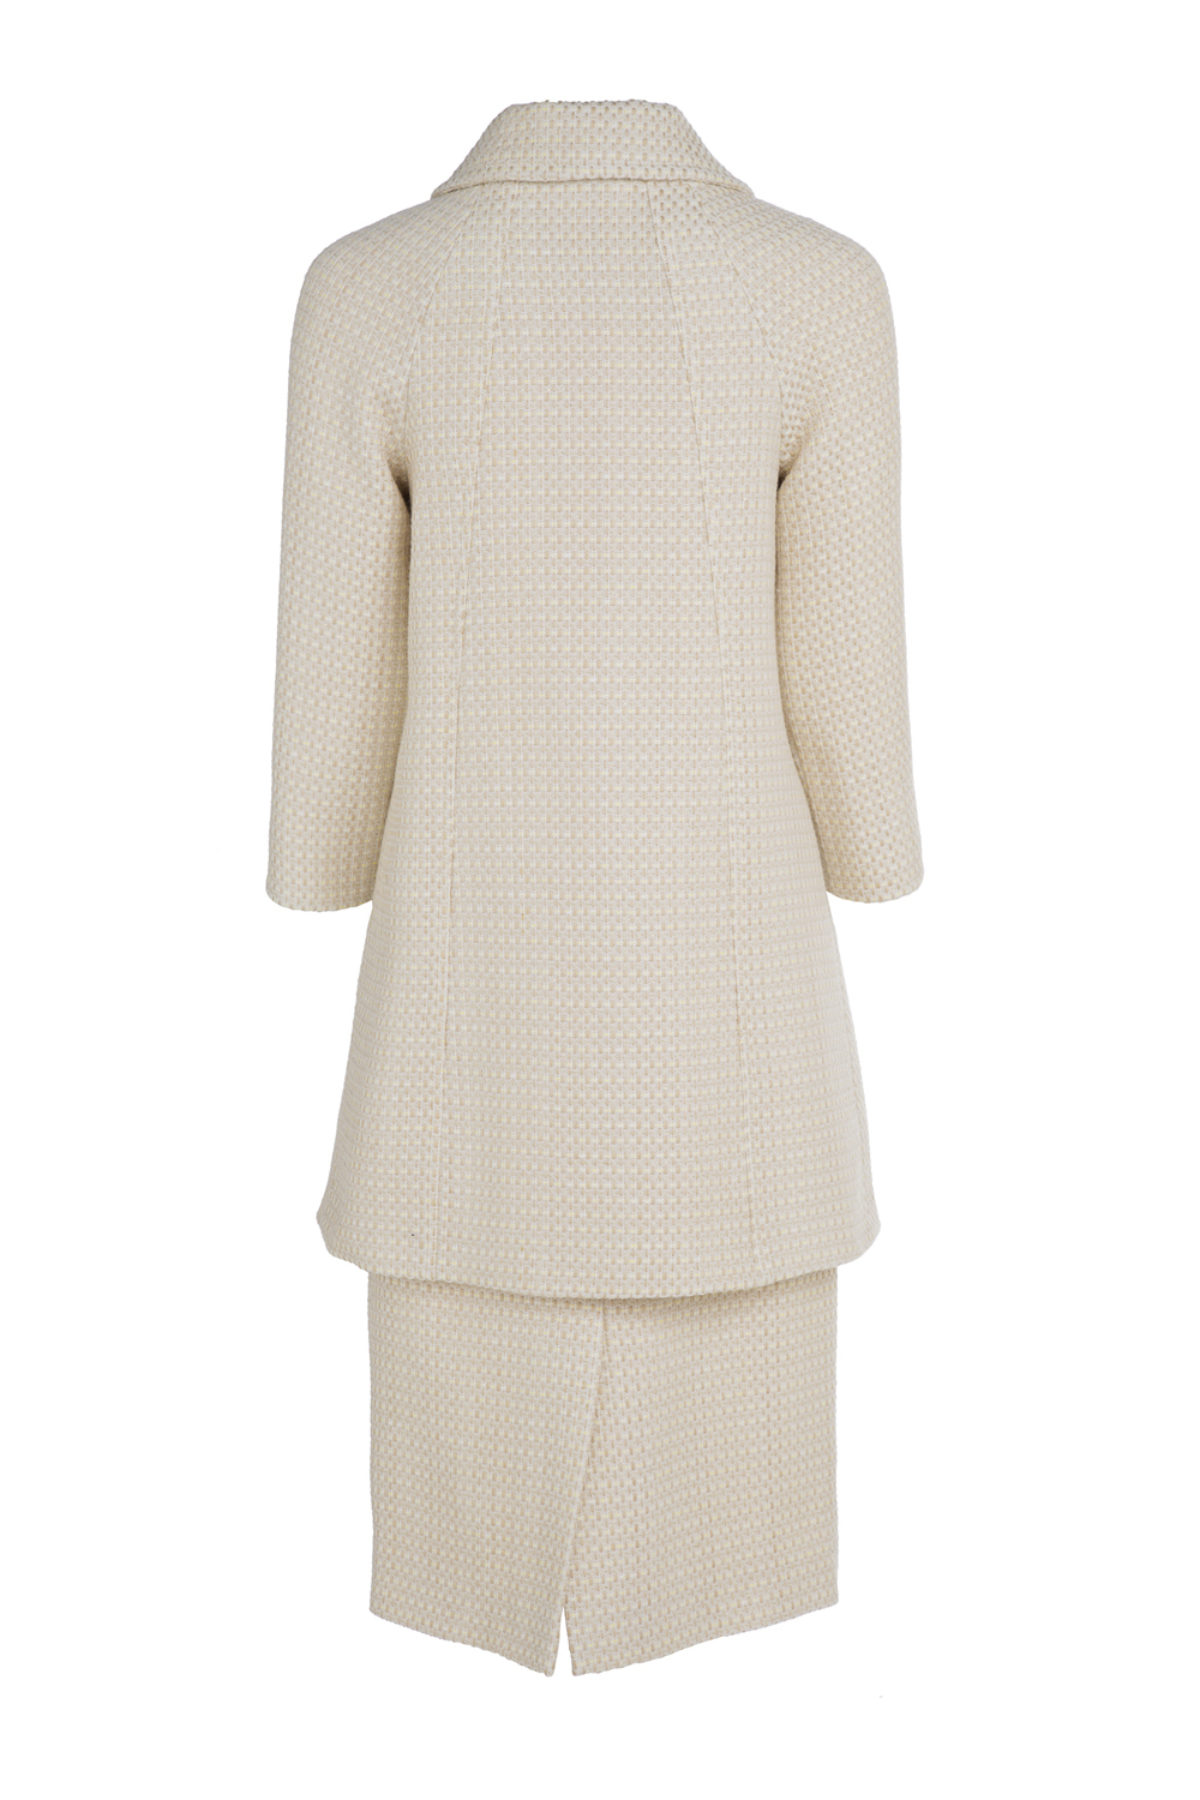 Pip Howeson Ameila Coat Back